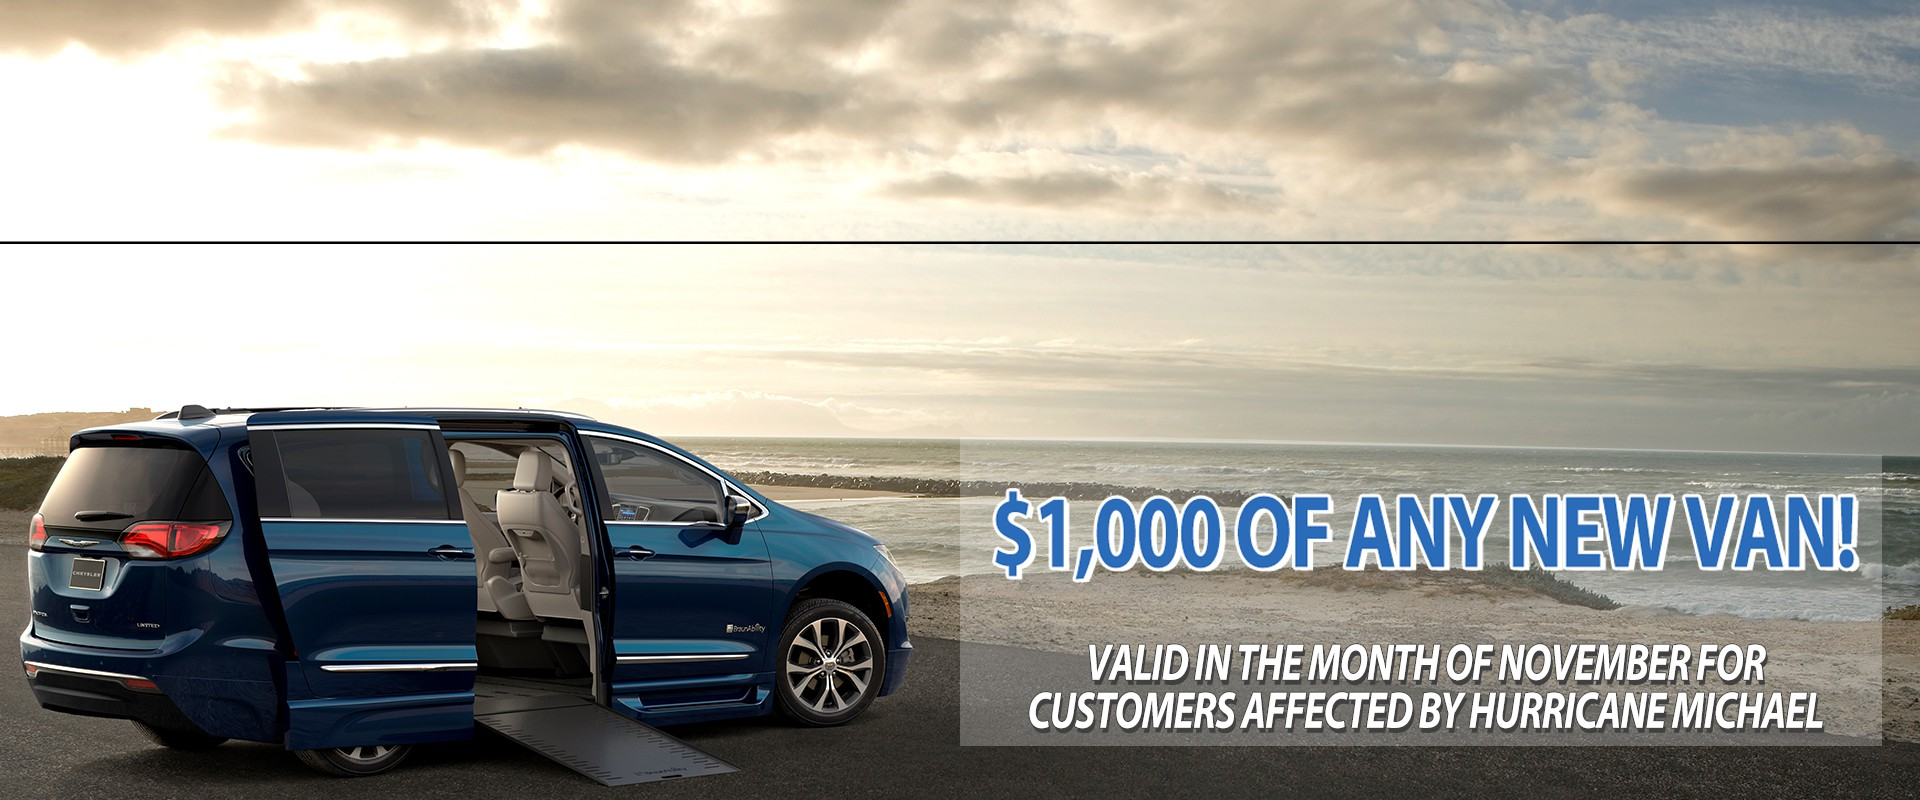 November Special - $1,000 off a new mobility vehicle The Gulf Coast